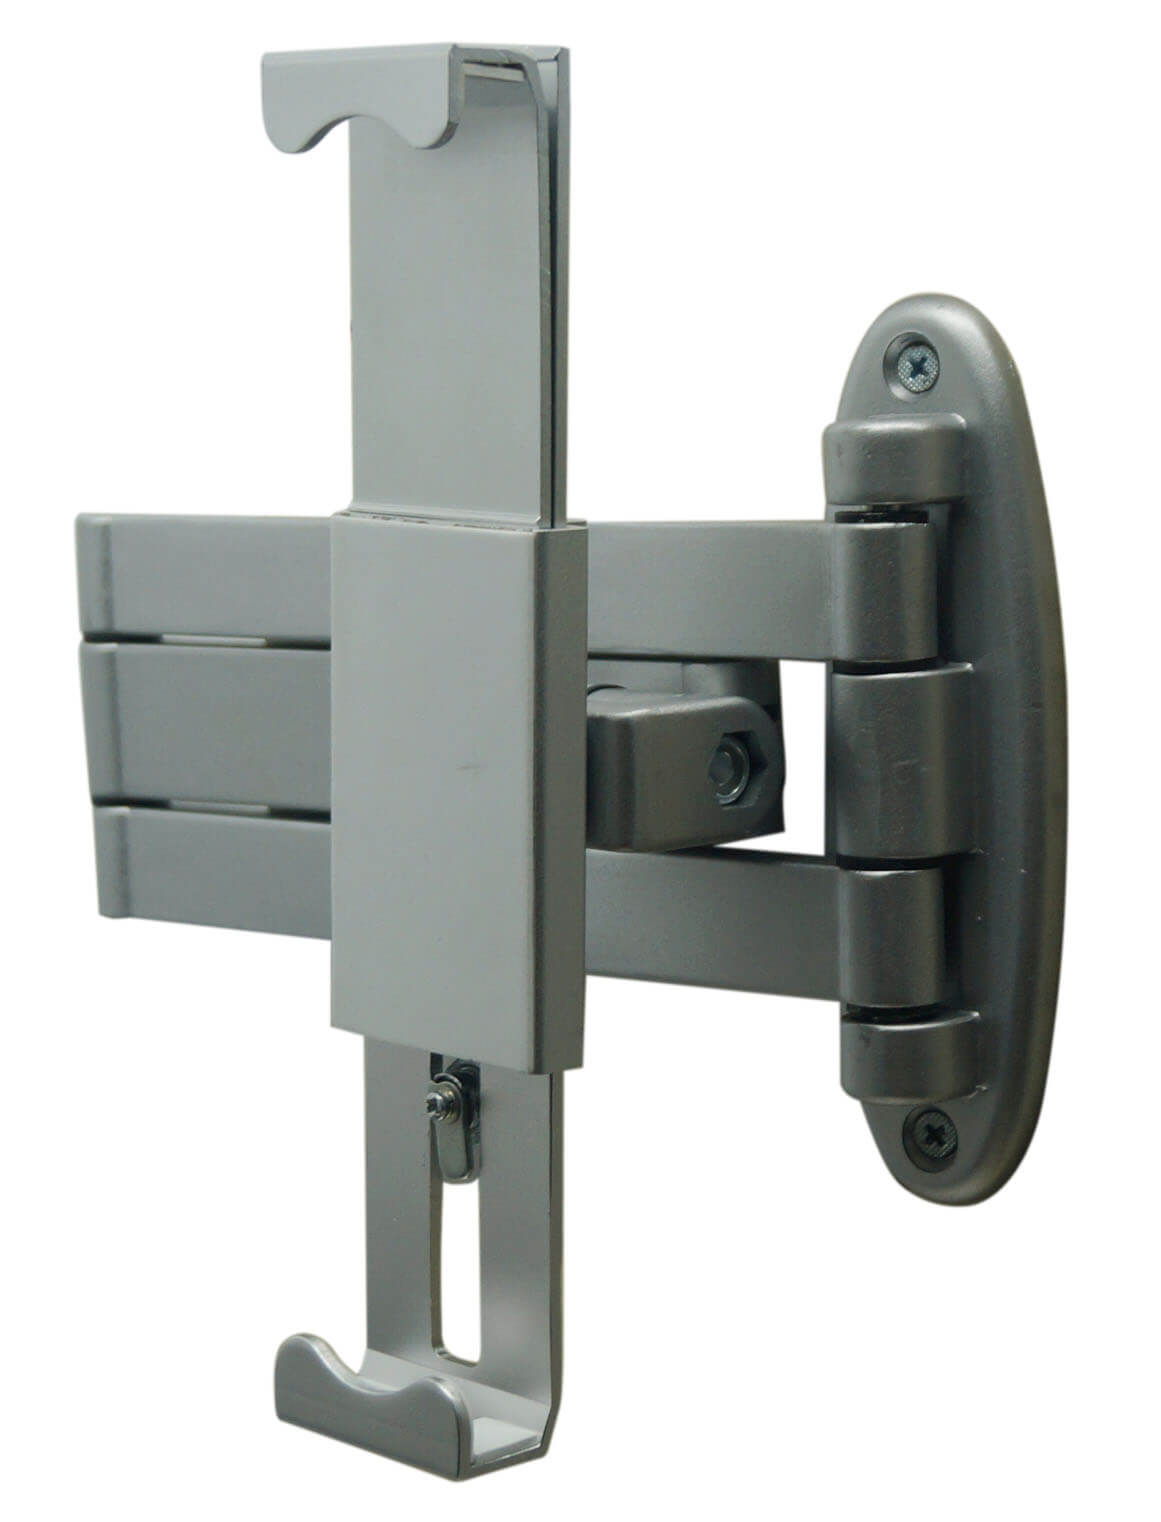 P08p Ipad Tablet Full Motion Wall Mount For Display Up